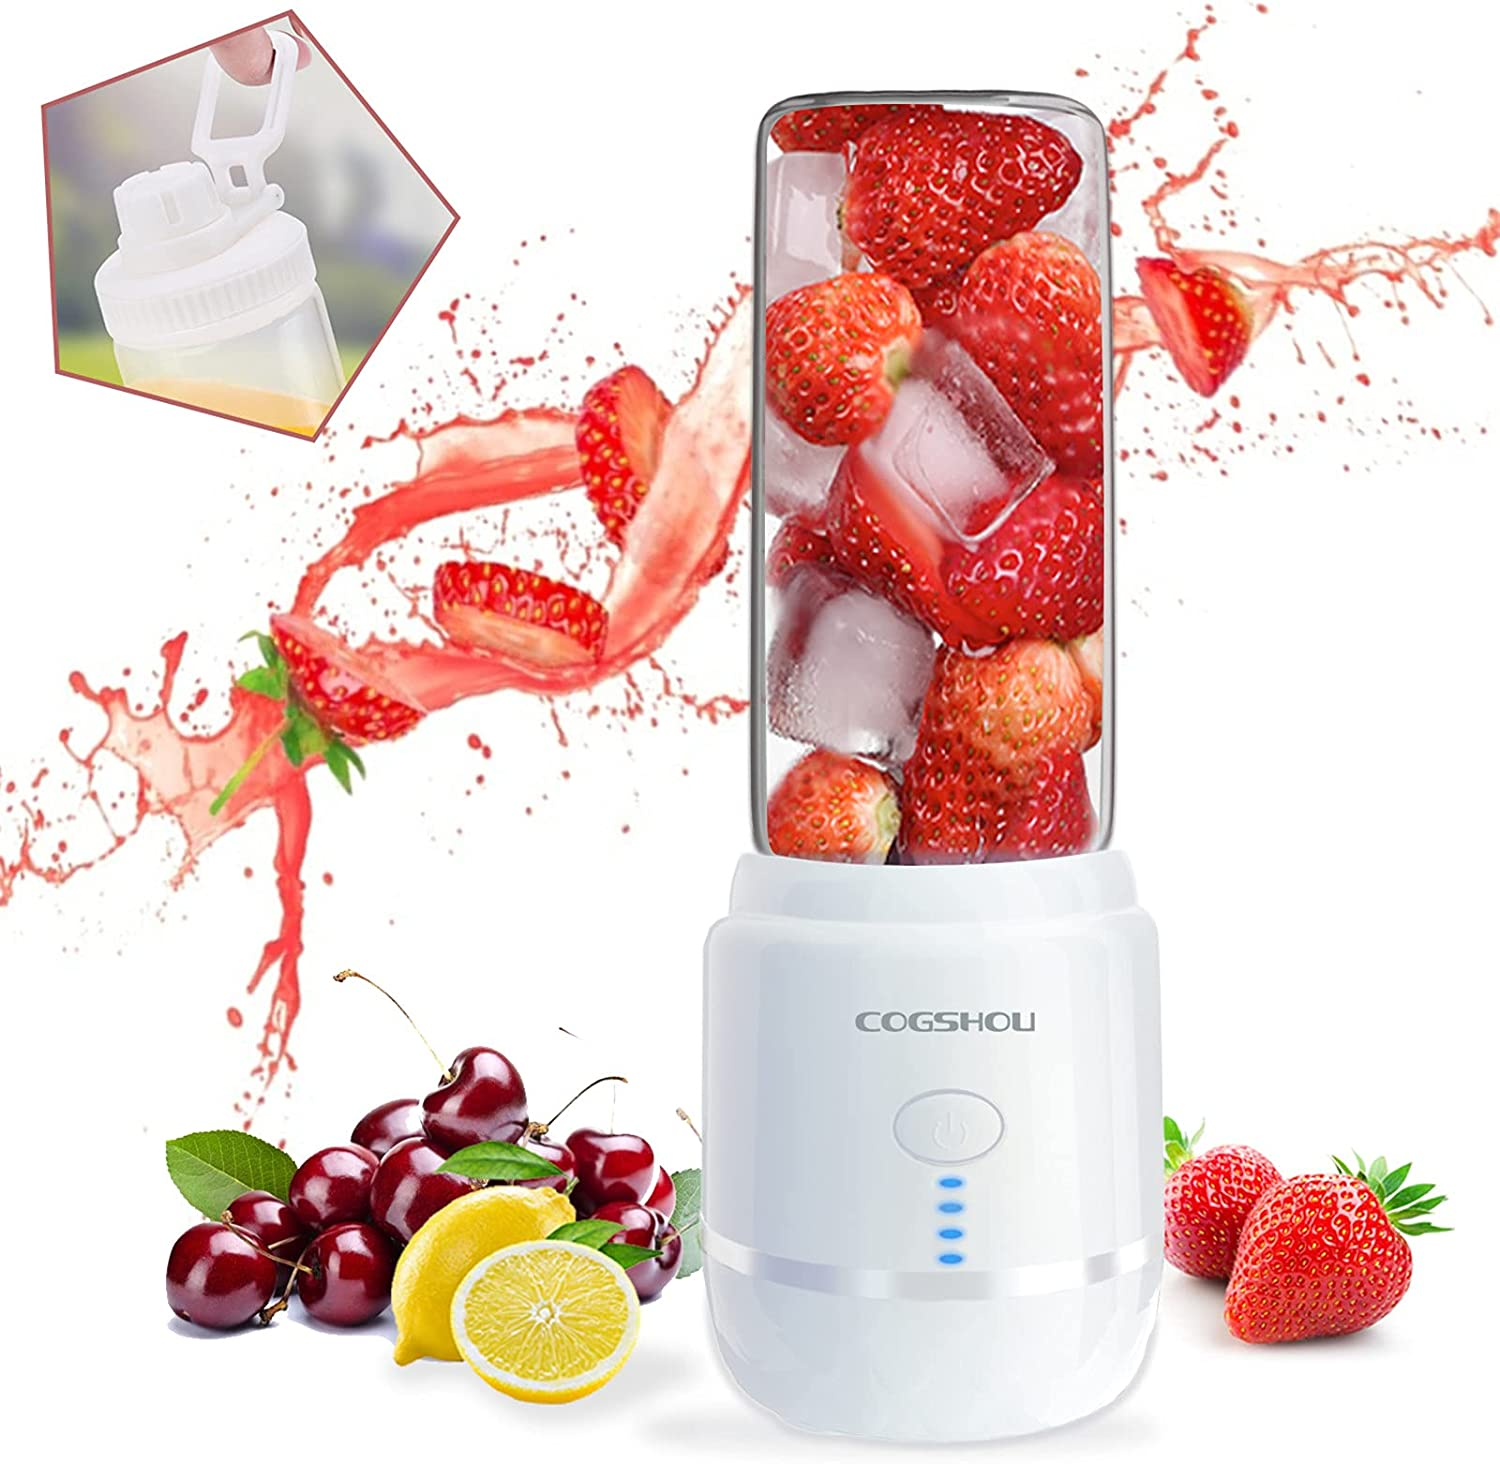 Portable Blender, Personal Size Blender USB Rechargeable with 6 Blades for Shakes and Smoothies, Fruit Juice Mixer, Mini Blender 15oz Jucie Cup for Sports,Travel,Gym,Office and Home